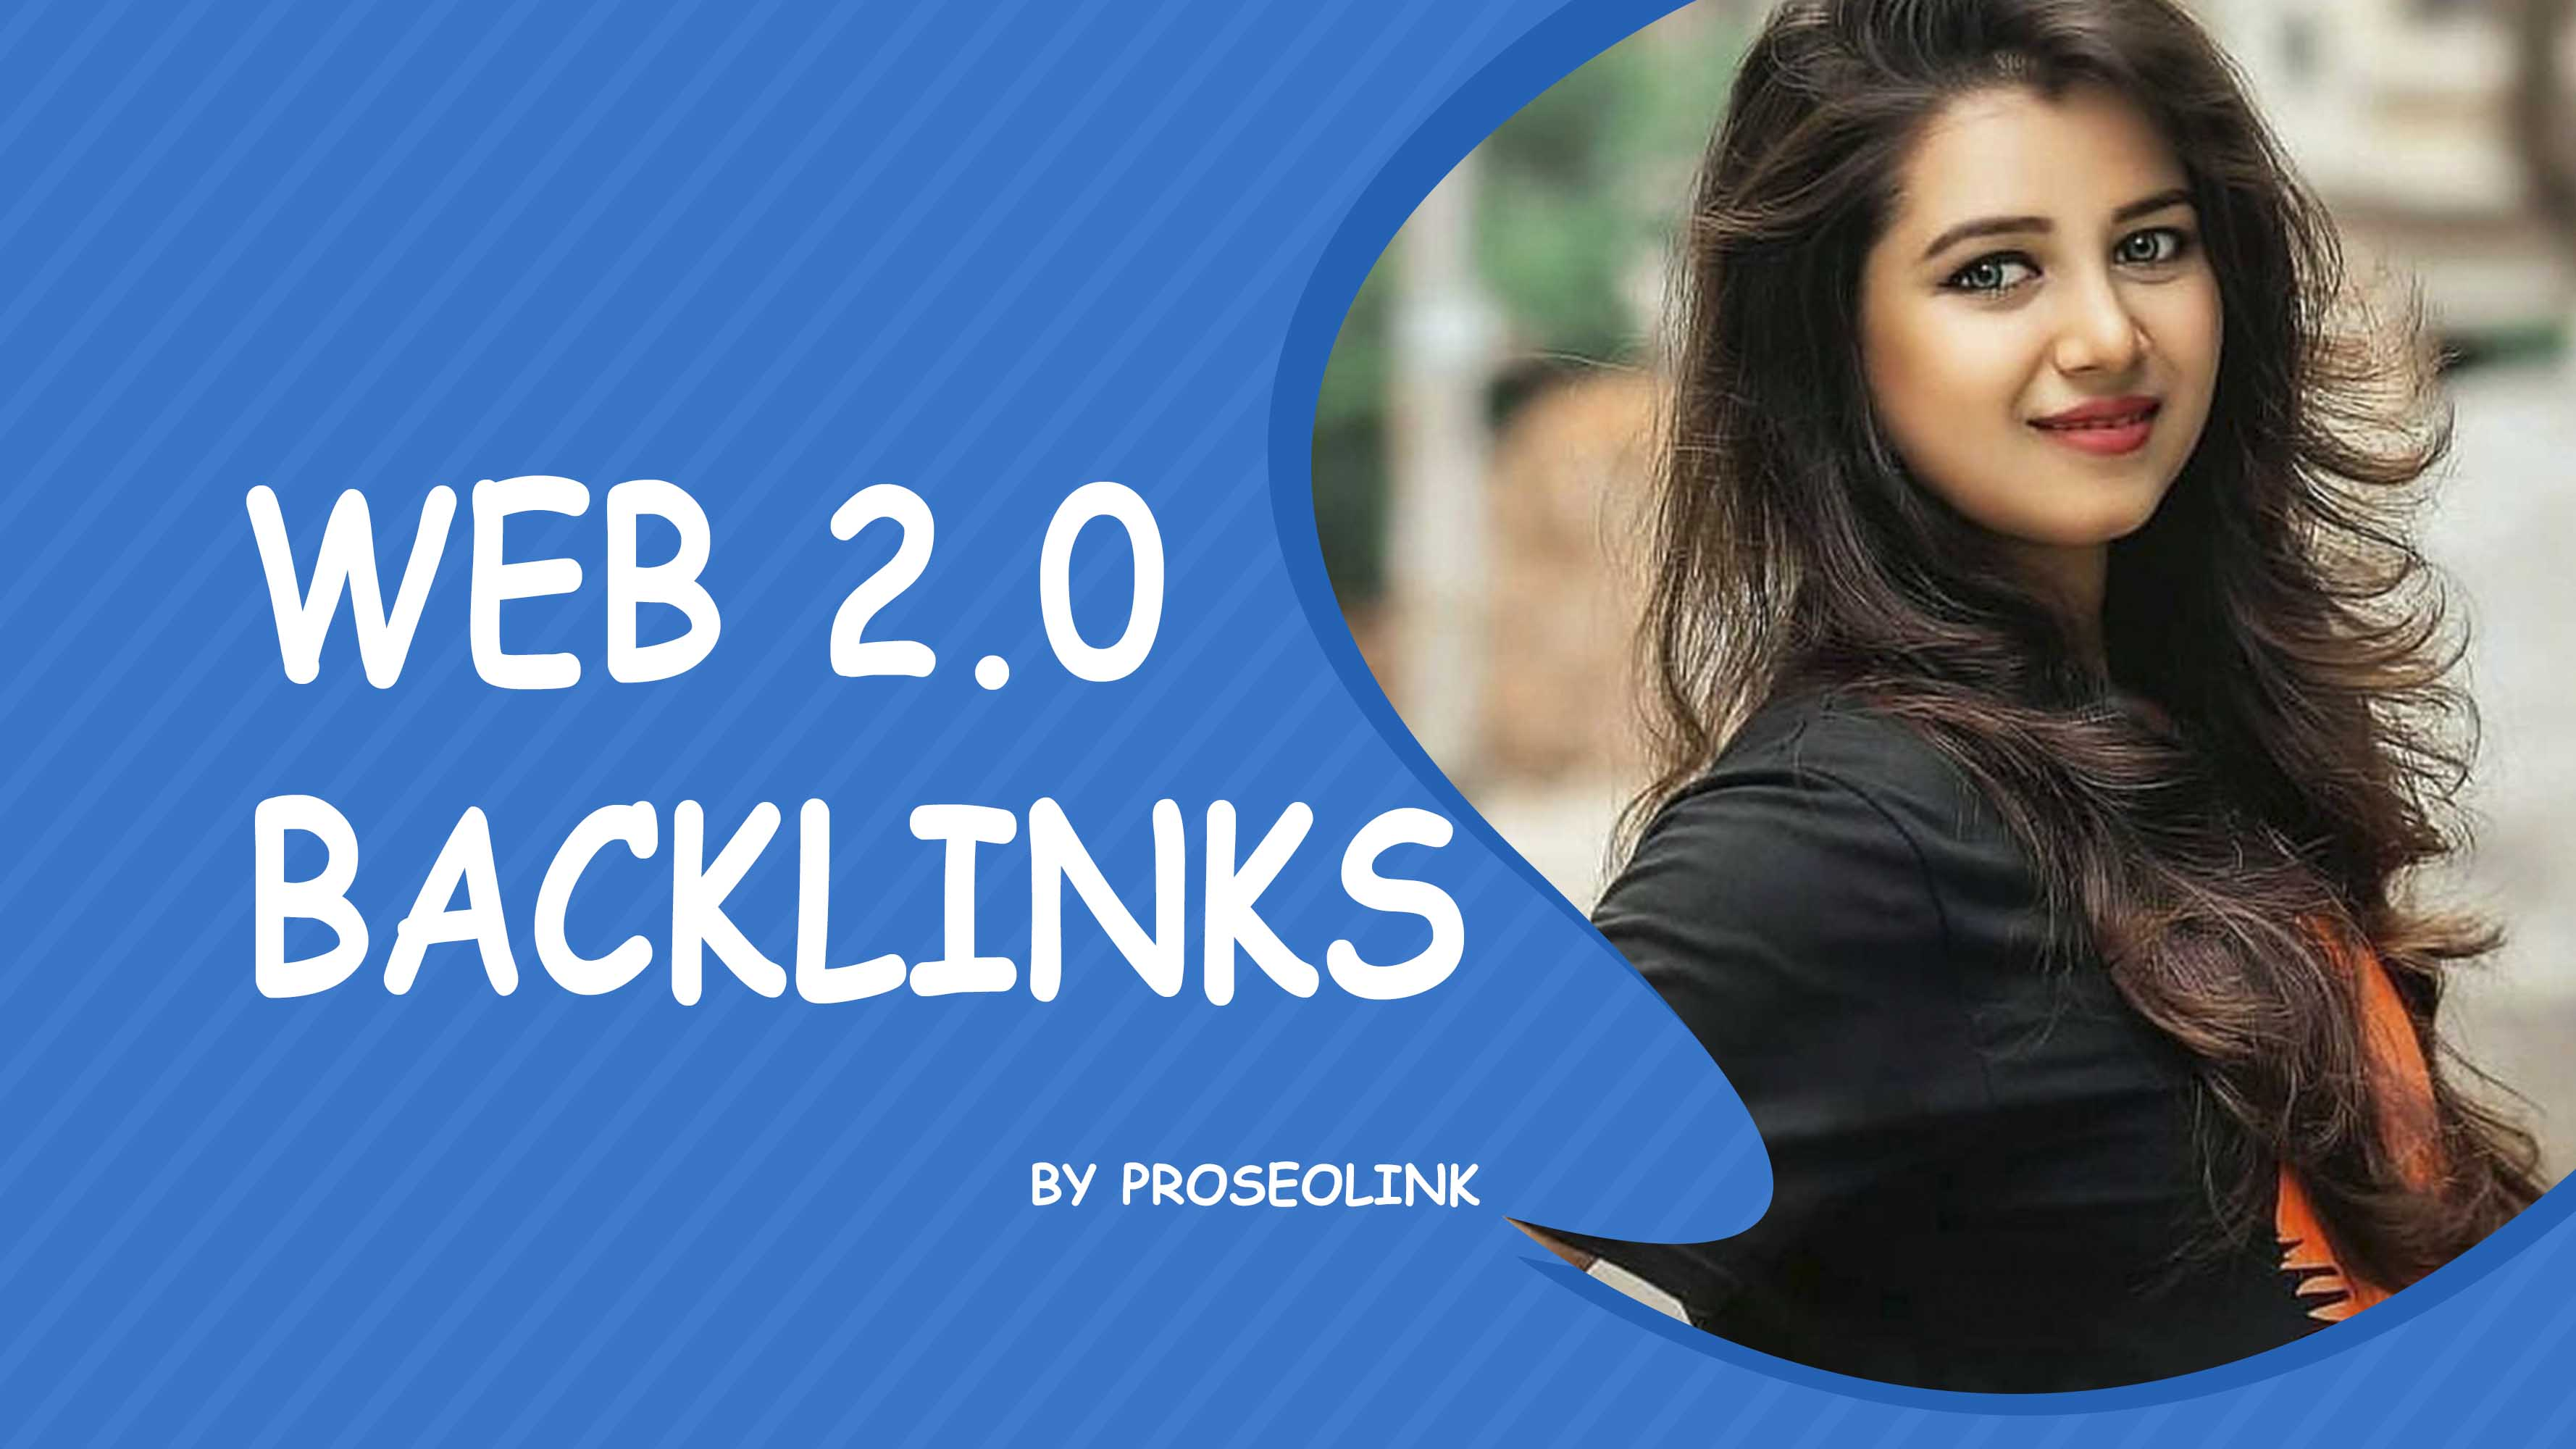 Buy 500+ Web 2.0 Blog Post Backlinks for Fast SEO Ranking your website